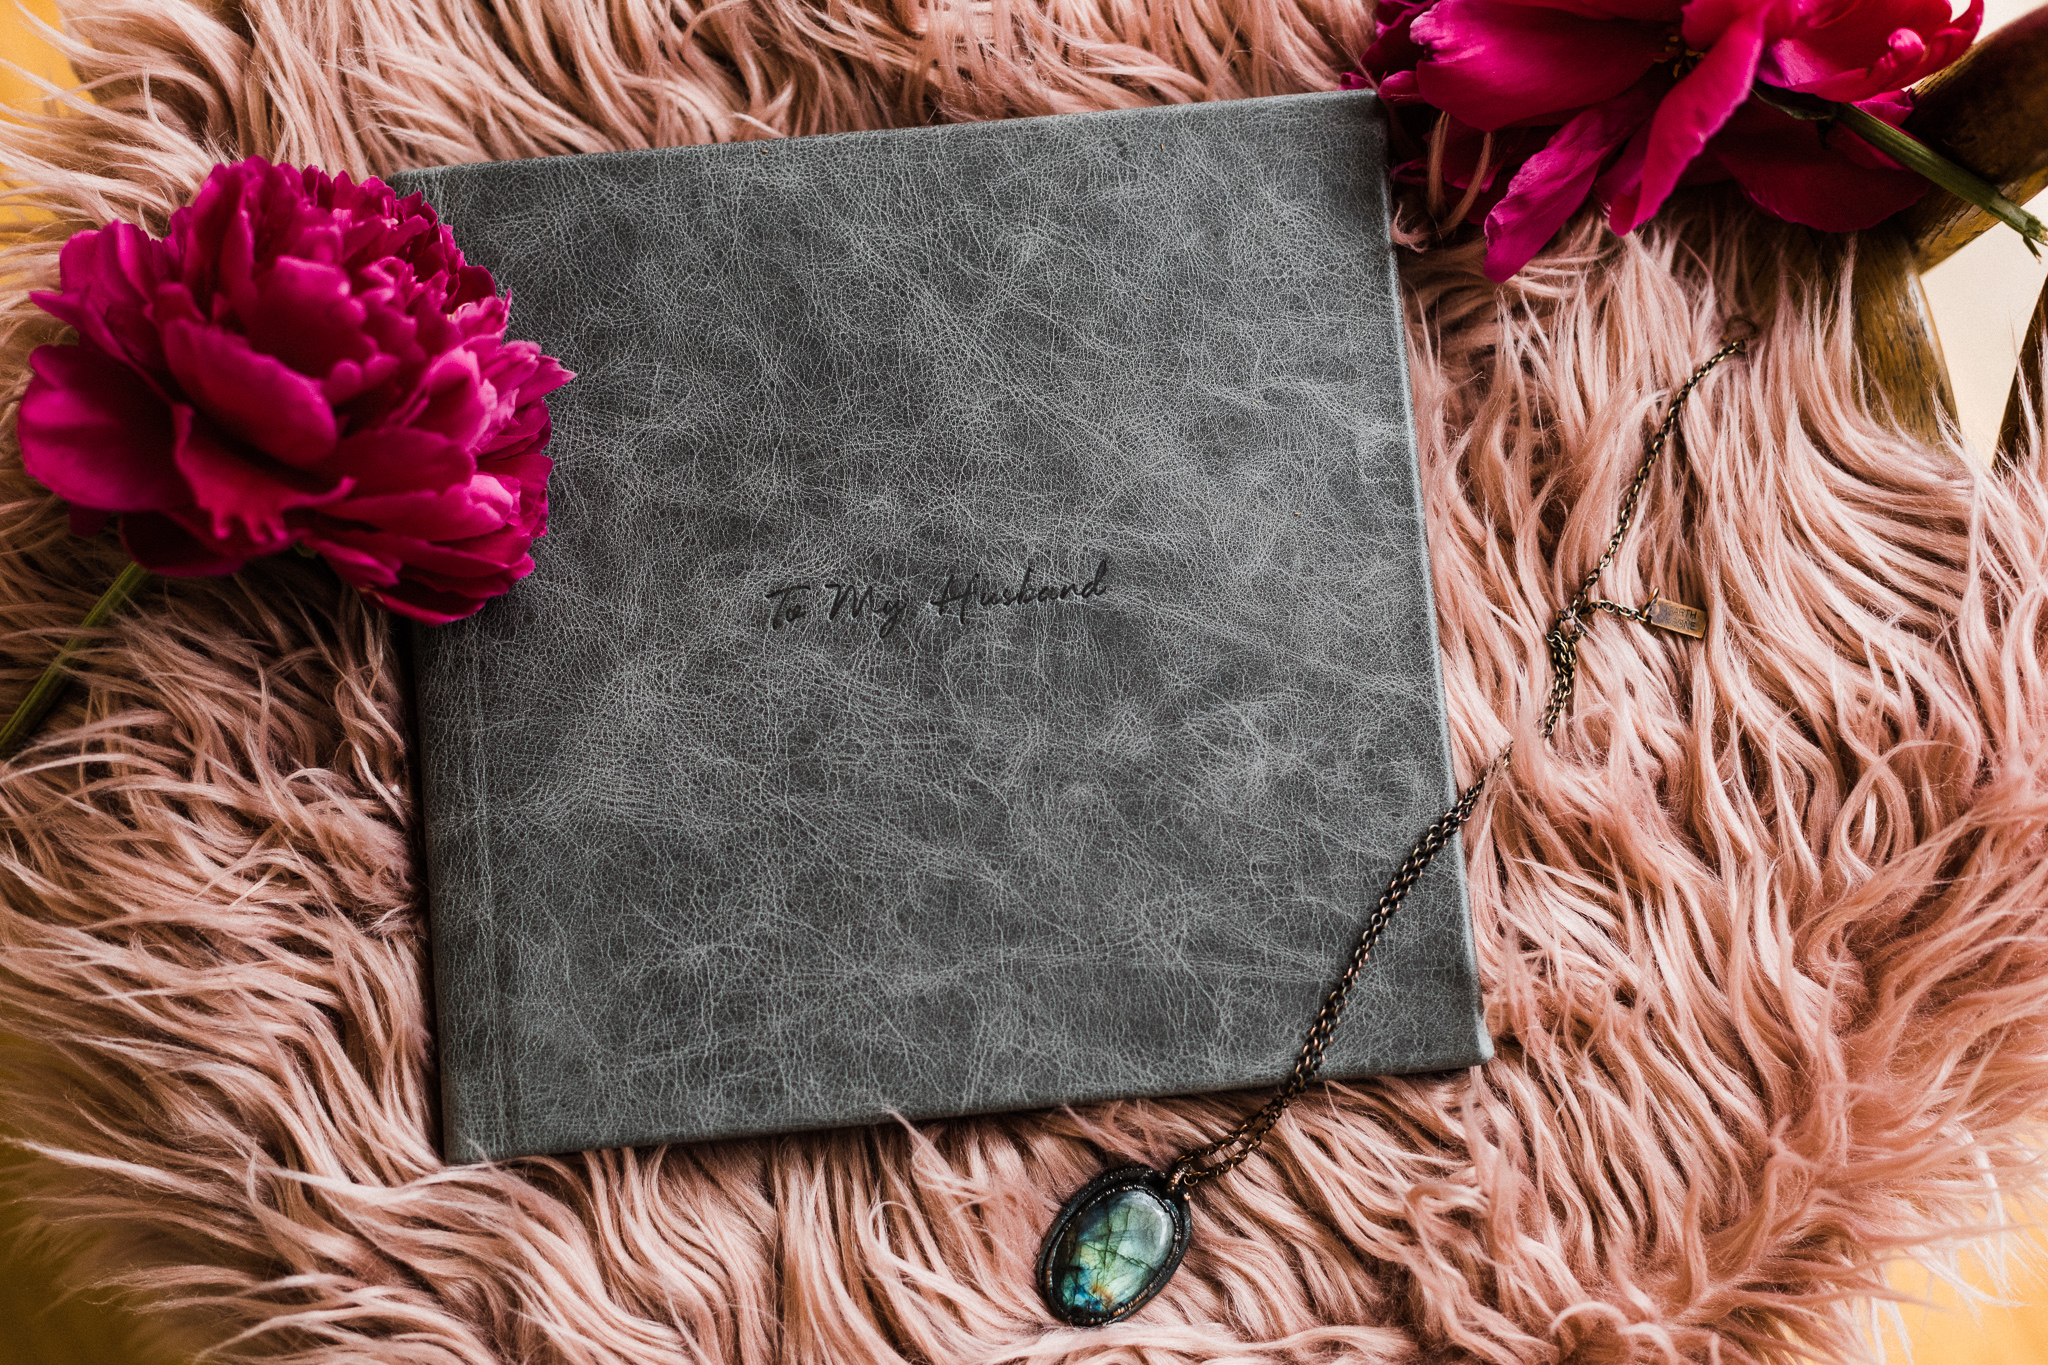 """- Albums consists of a gorgeous, 20 page lay-flat album in a size of your choosing and come with a complimentary charcoal box for storing. Covers are limited to material only- Leather, Linen or Velvet.Available in sizes: 8x8"""", 10x10"""" and 12x12""""Prices start at 1200"""